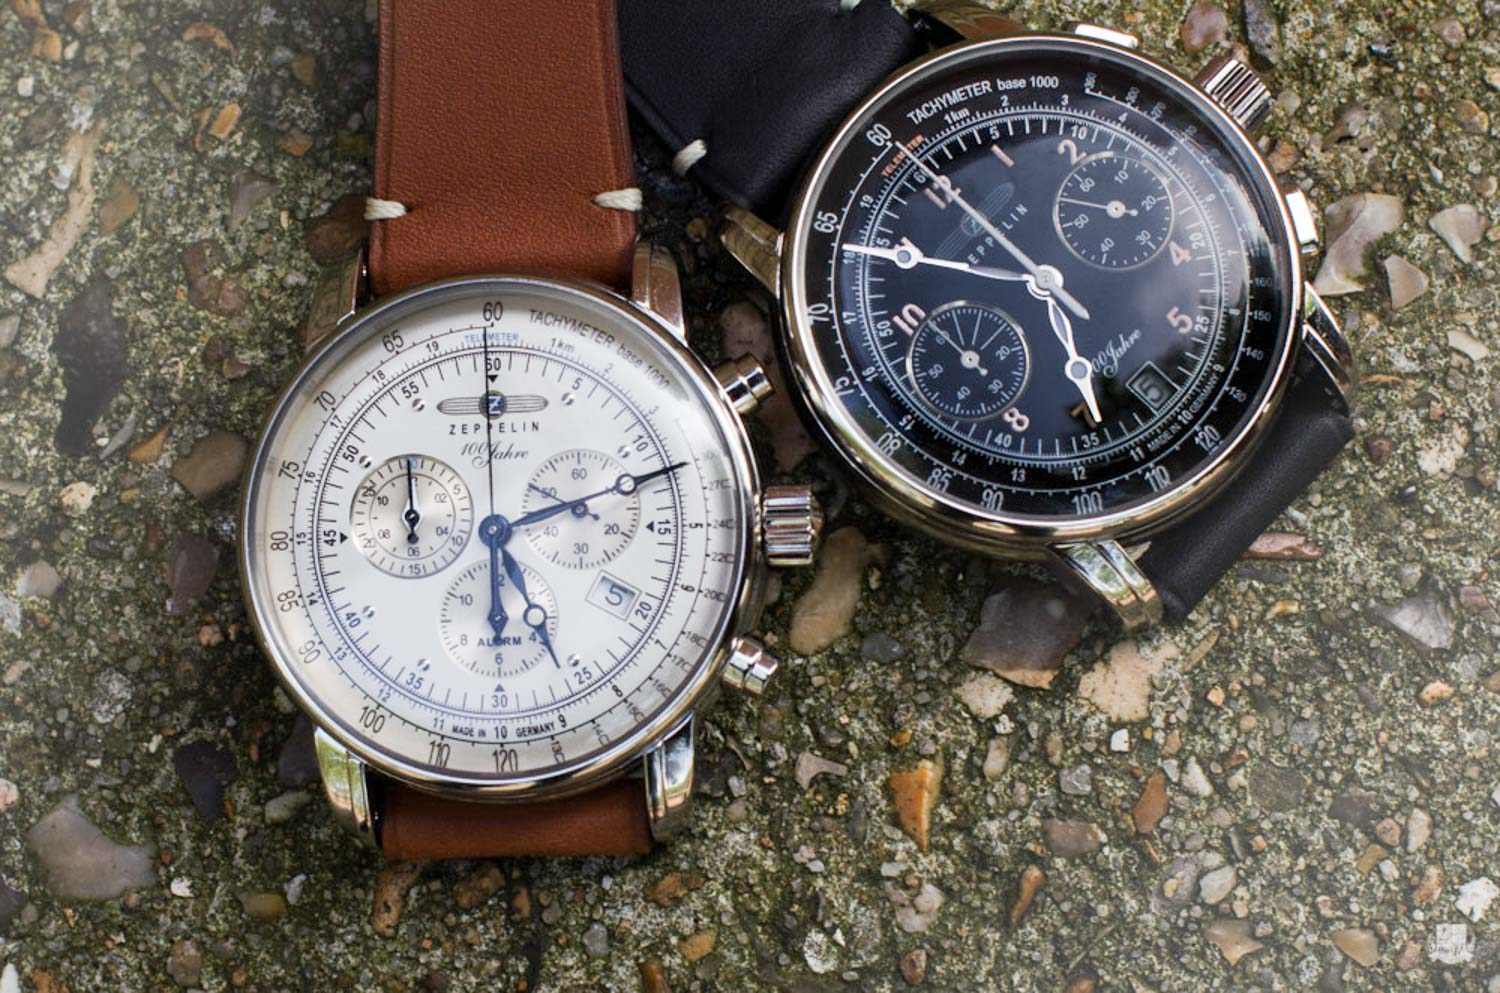 Chronographe Collection 100 Jahre - Zeppelin